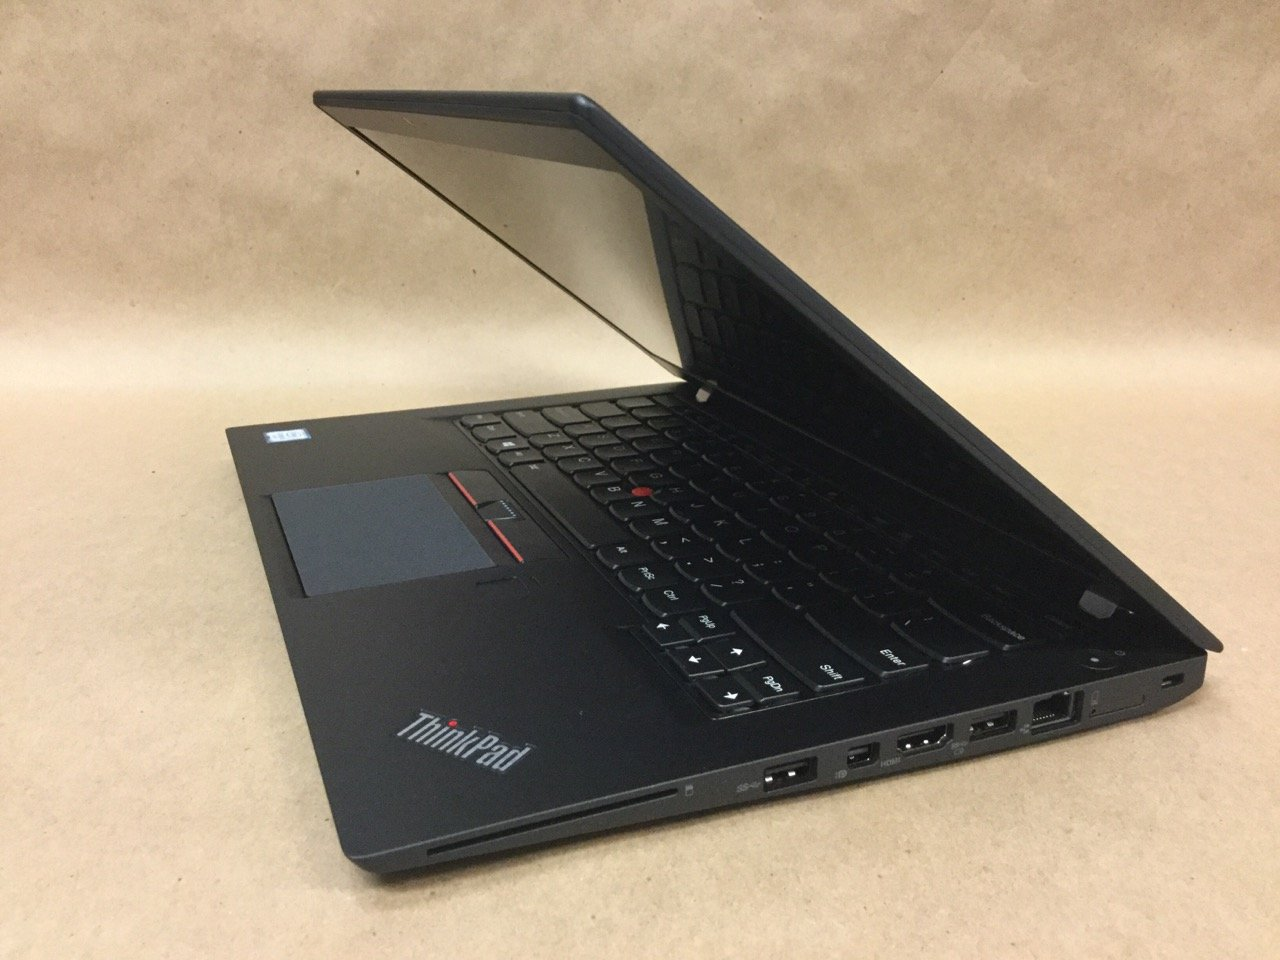 Amazon.com: Lenovo ThinkPad T460s 14